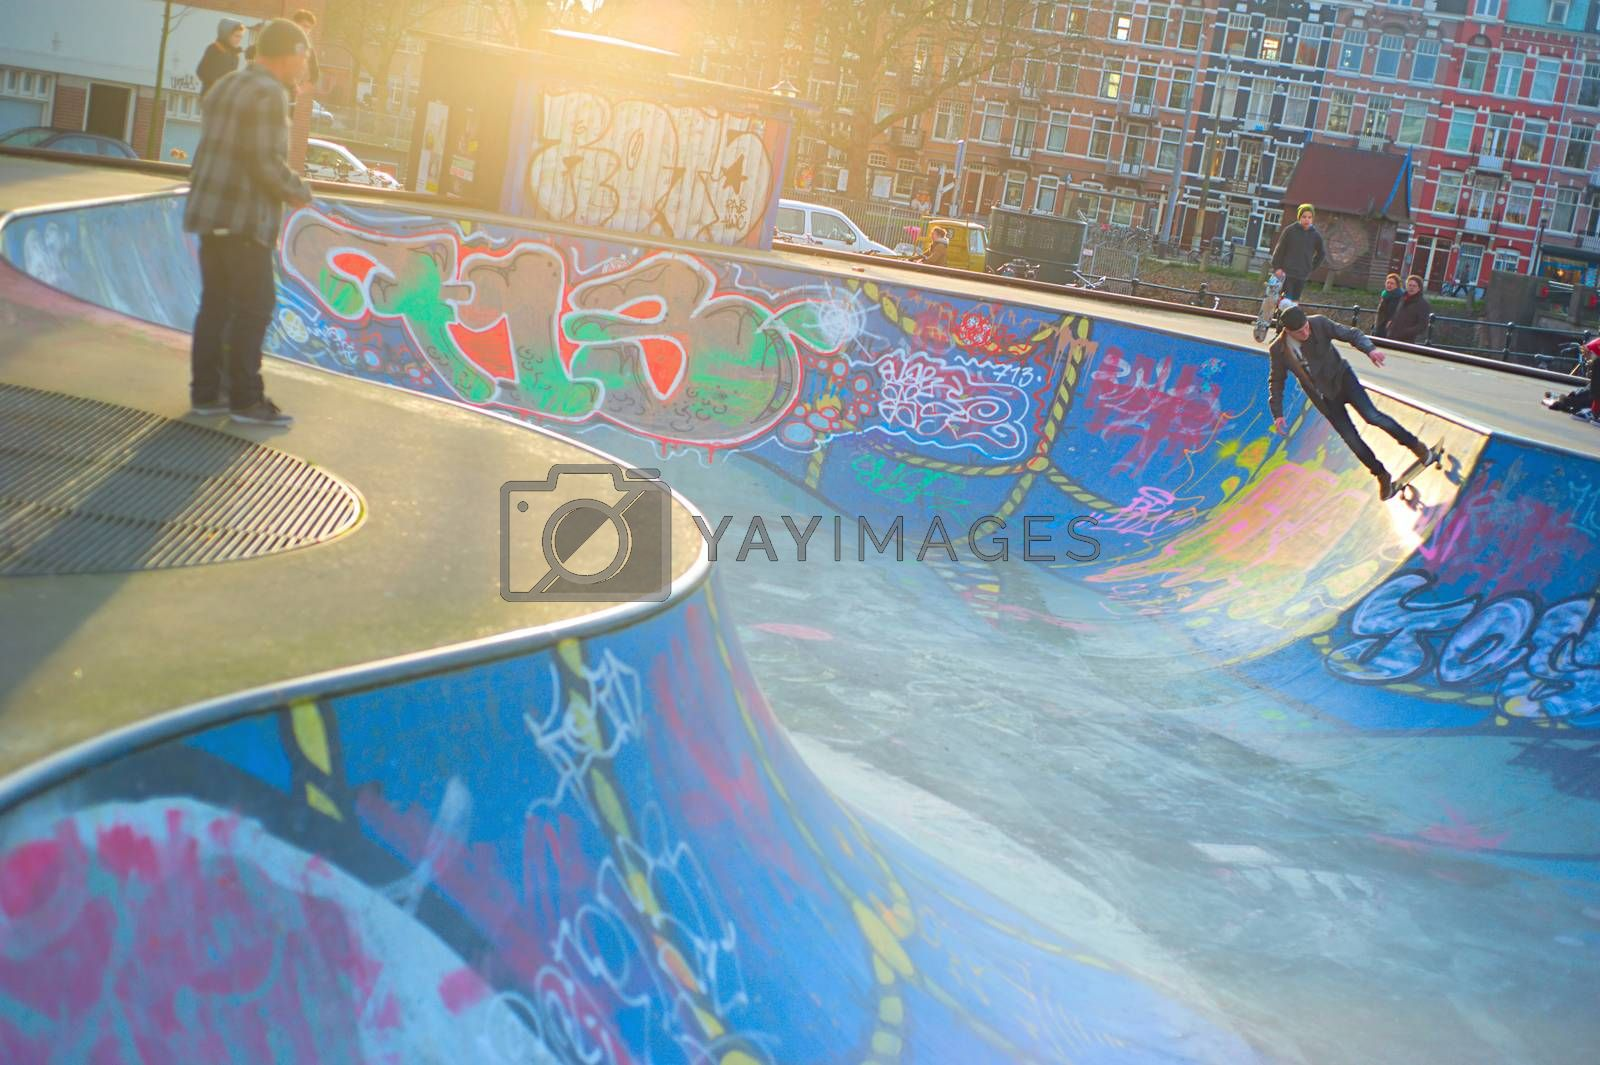 AMSTERDAM, THE NETHERLANDS ��� FEBRUARY 24, 2014: Local skaters are training on a skate ground in Amsterdam on a warm winter day. Residential districts are well equipped for sport activities there.